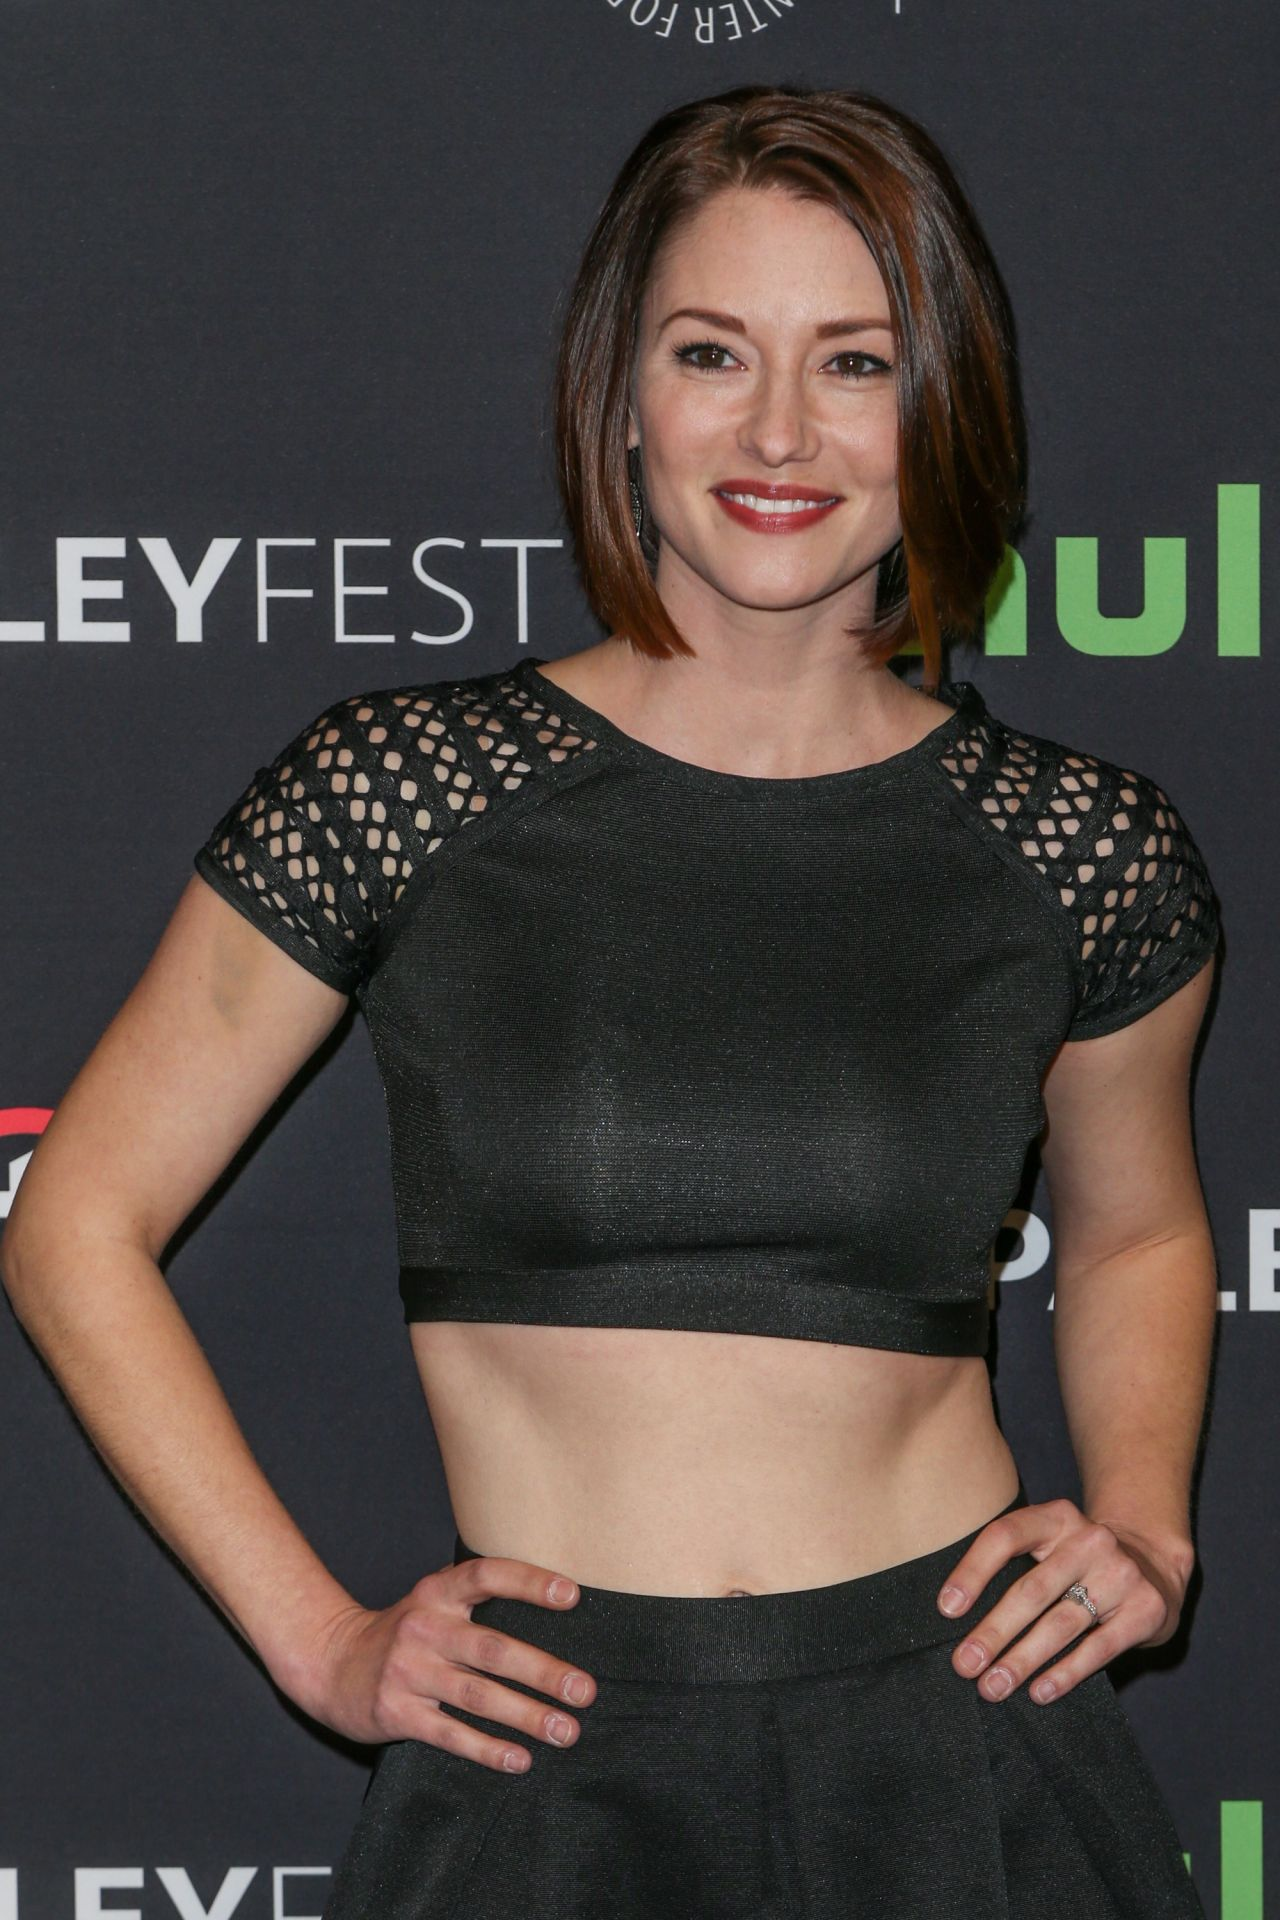 Fotos Chyler Leigh nudes (84 photo), Tits, Is a cute, Twitter, legs 2017